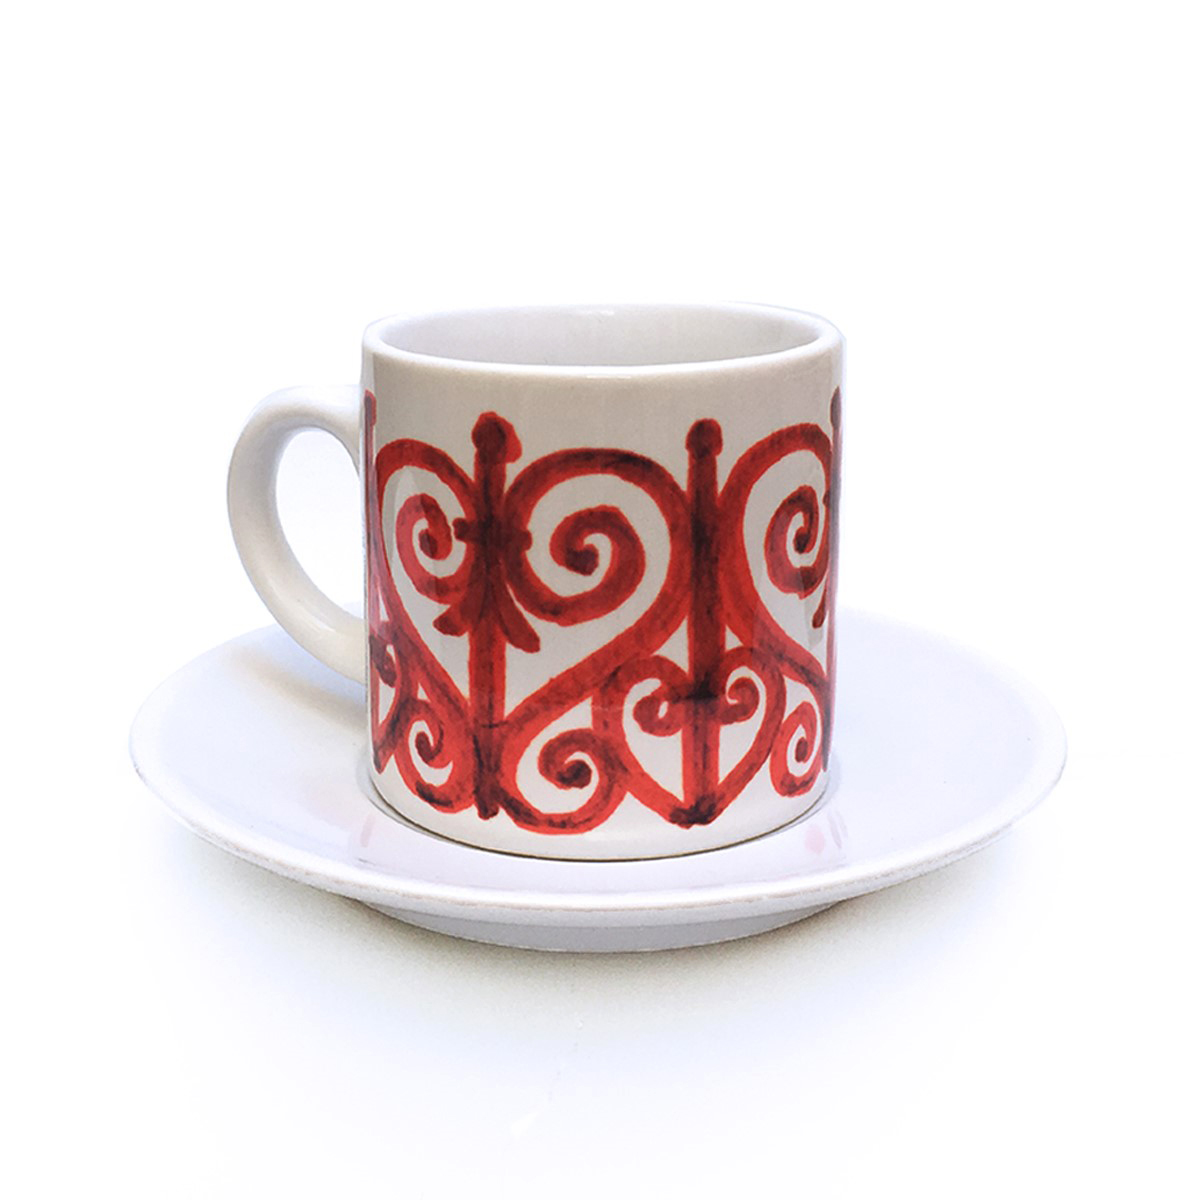 Wrought Iron Red Cup & Saucer Pattern 3